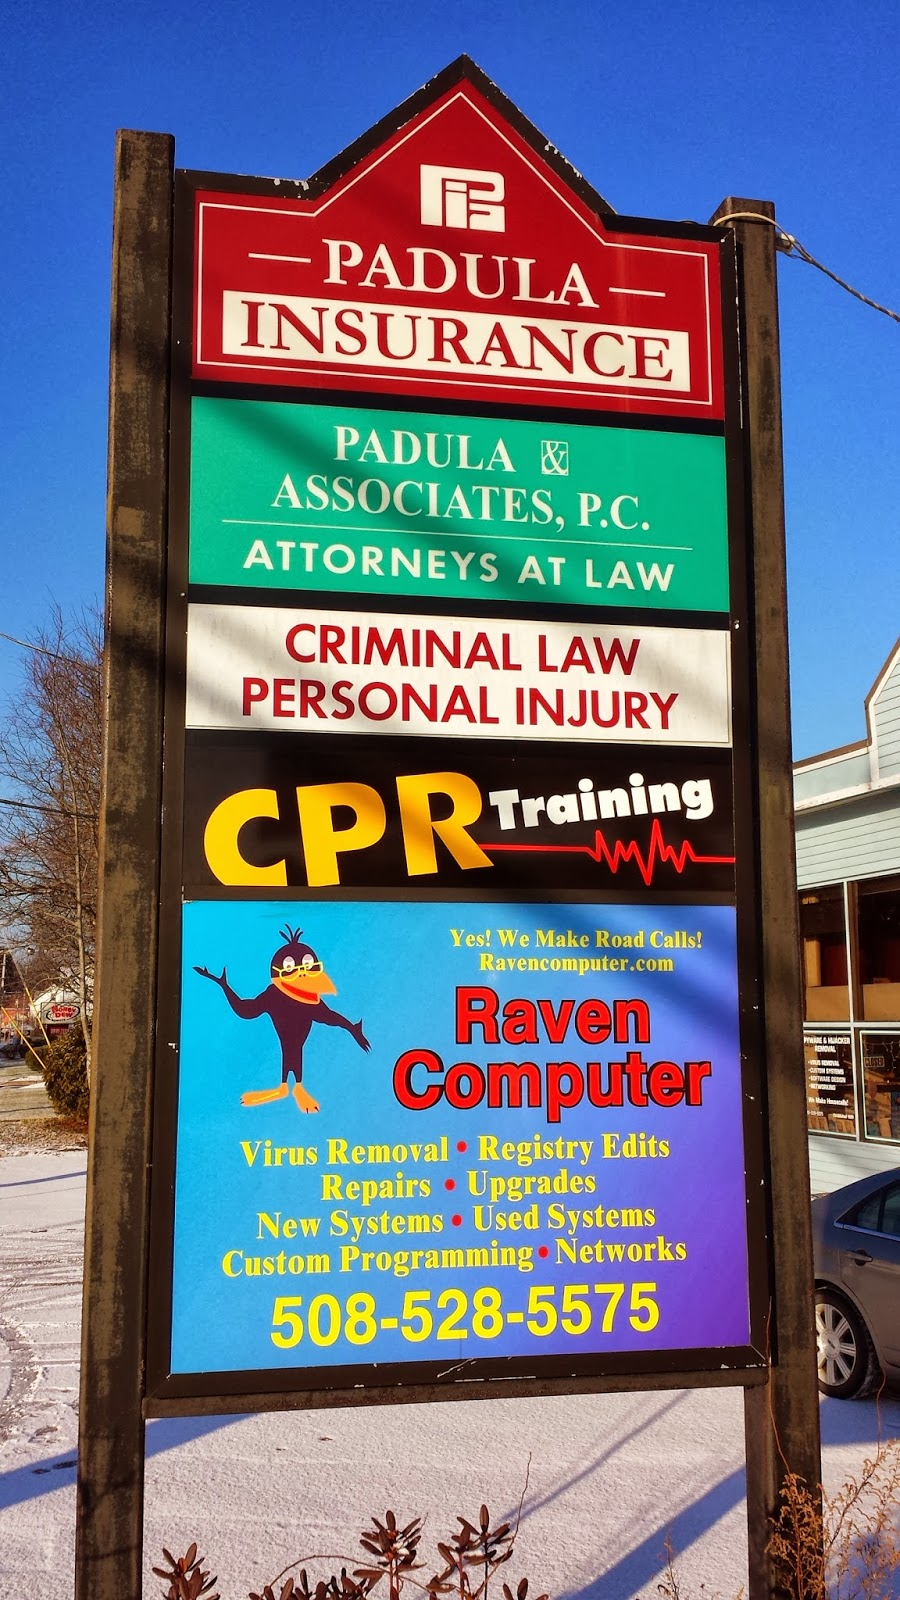 Act 1sr CPR - office sign on East Central St (next to Hess Oil)